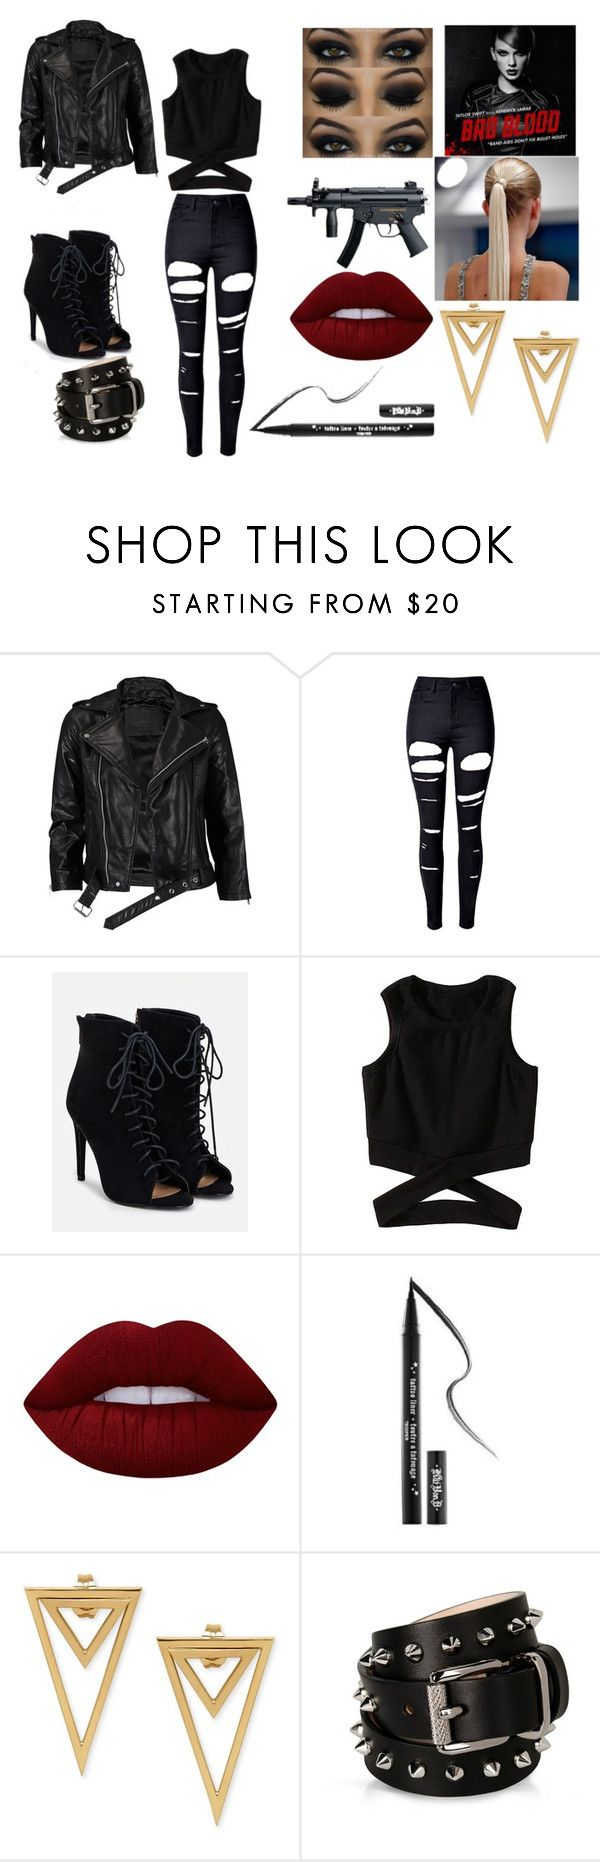 """""""Taylor Swift Bad Blood costume idea"""" by djj0710 ❤ liked on Polyvore featuring VIPARO, WithChic, JustFab, Lime Crime, Kat Von D and Barbara Bui"""